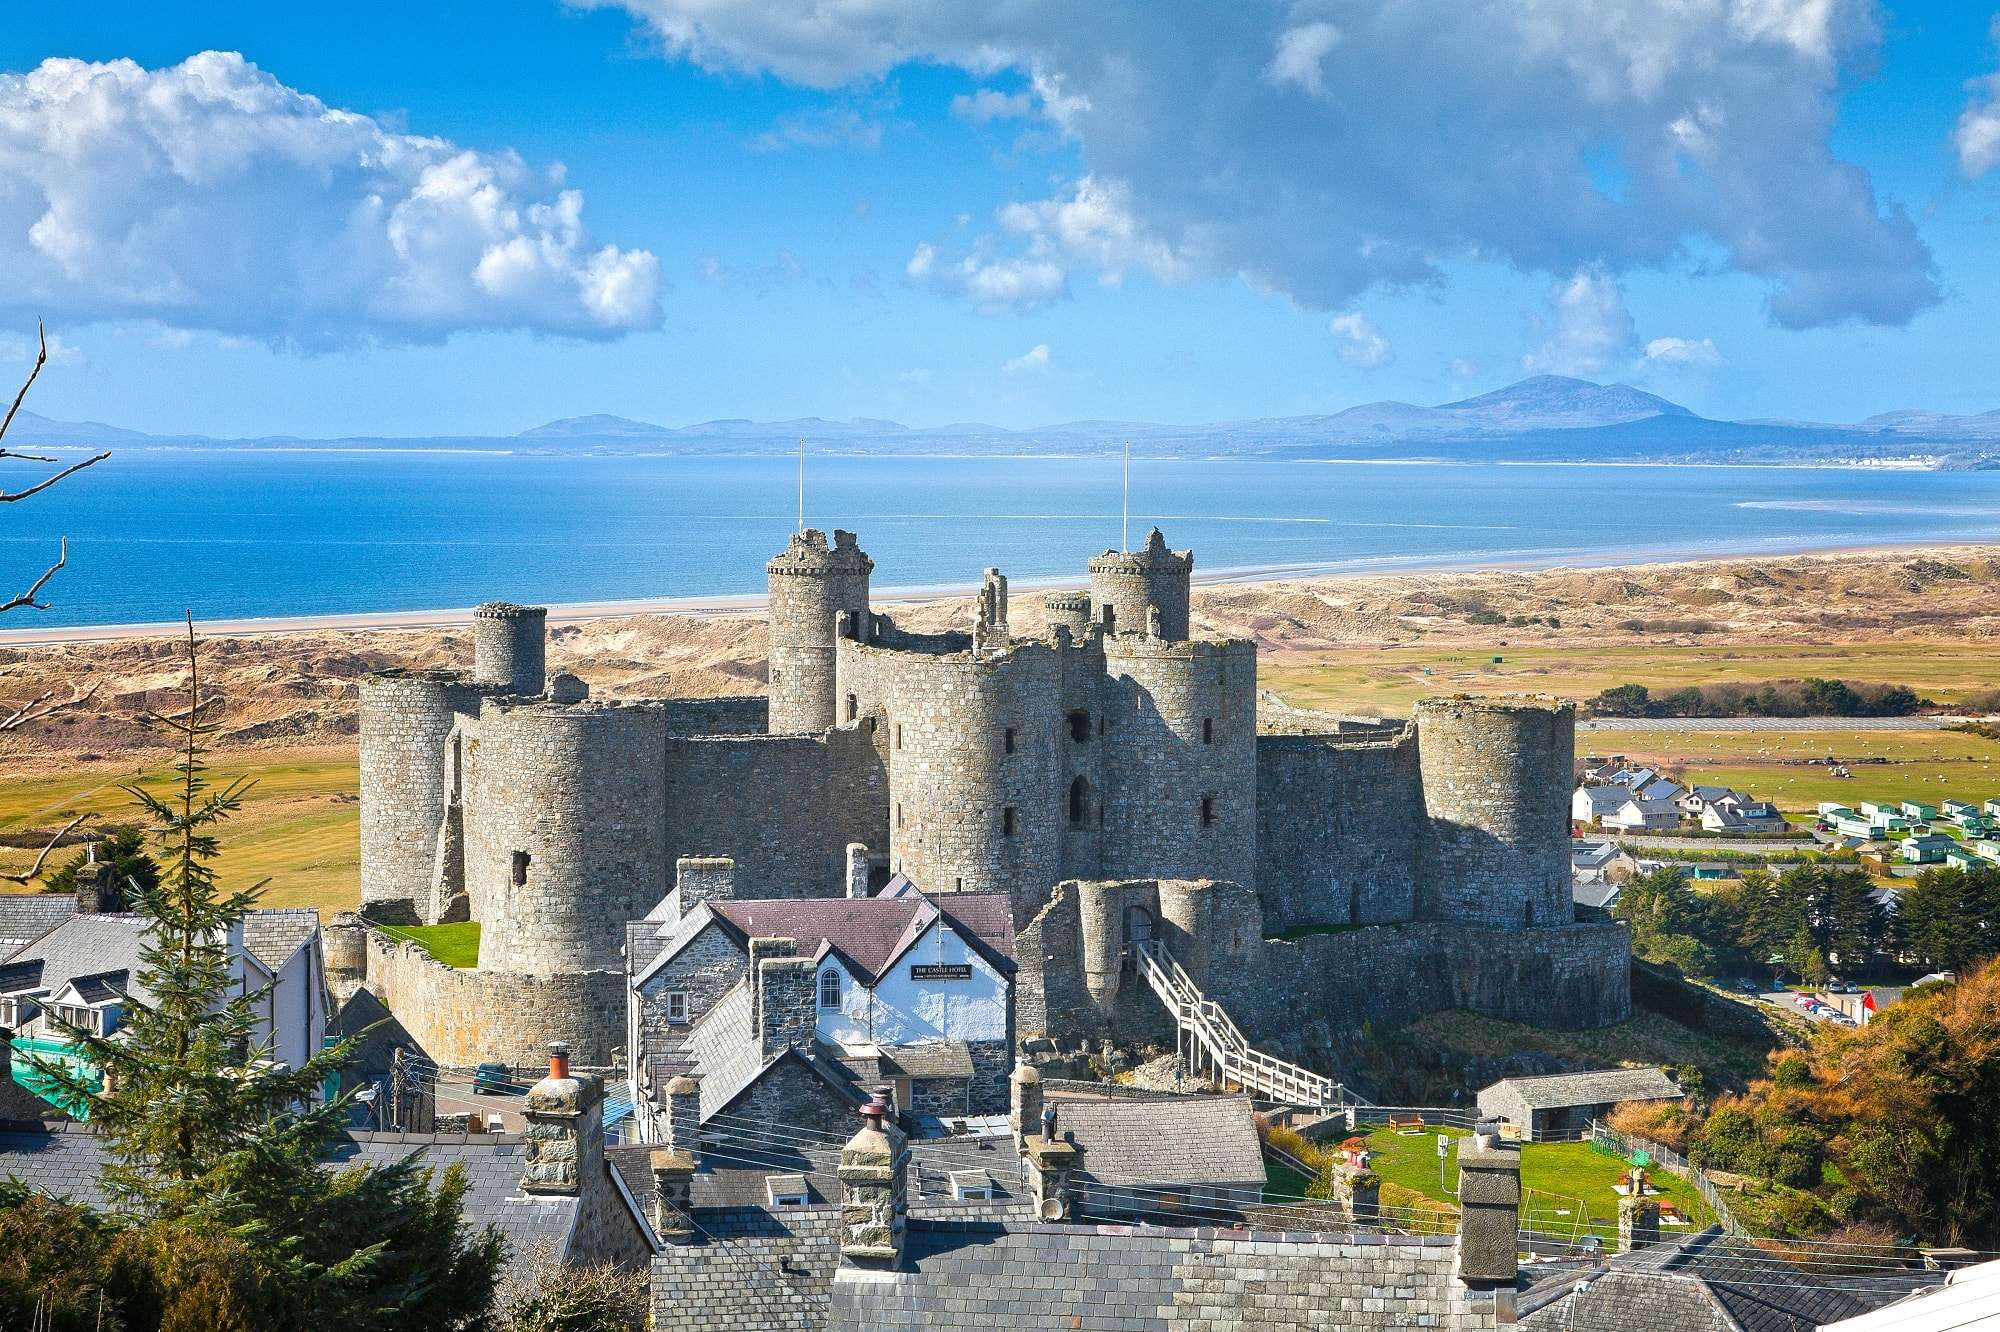 Ariel vew of Harlech castle, town and beach backdrop of the mountains in Snowdonia